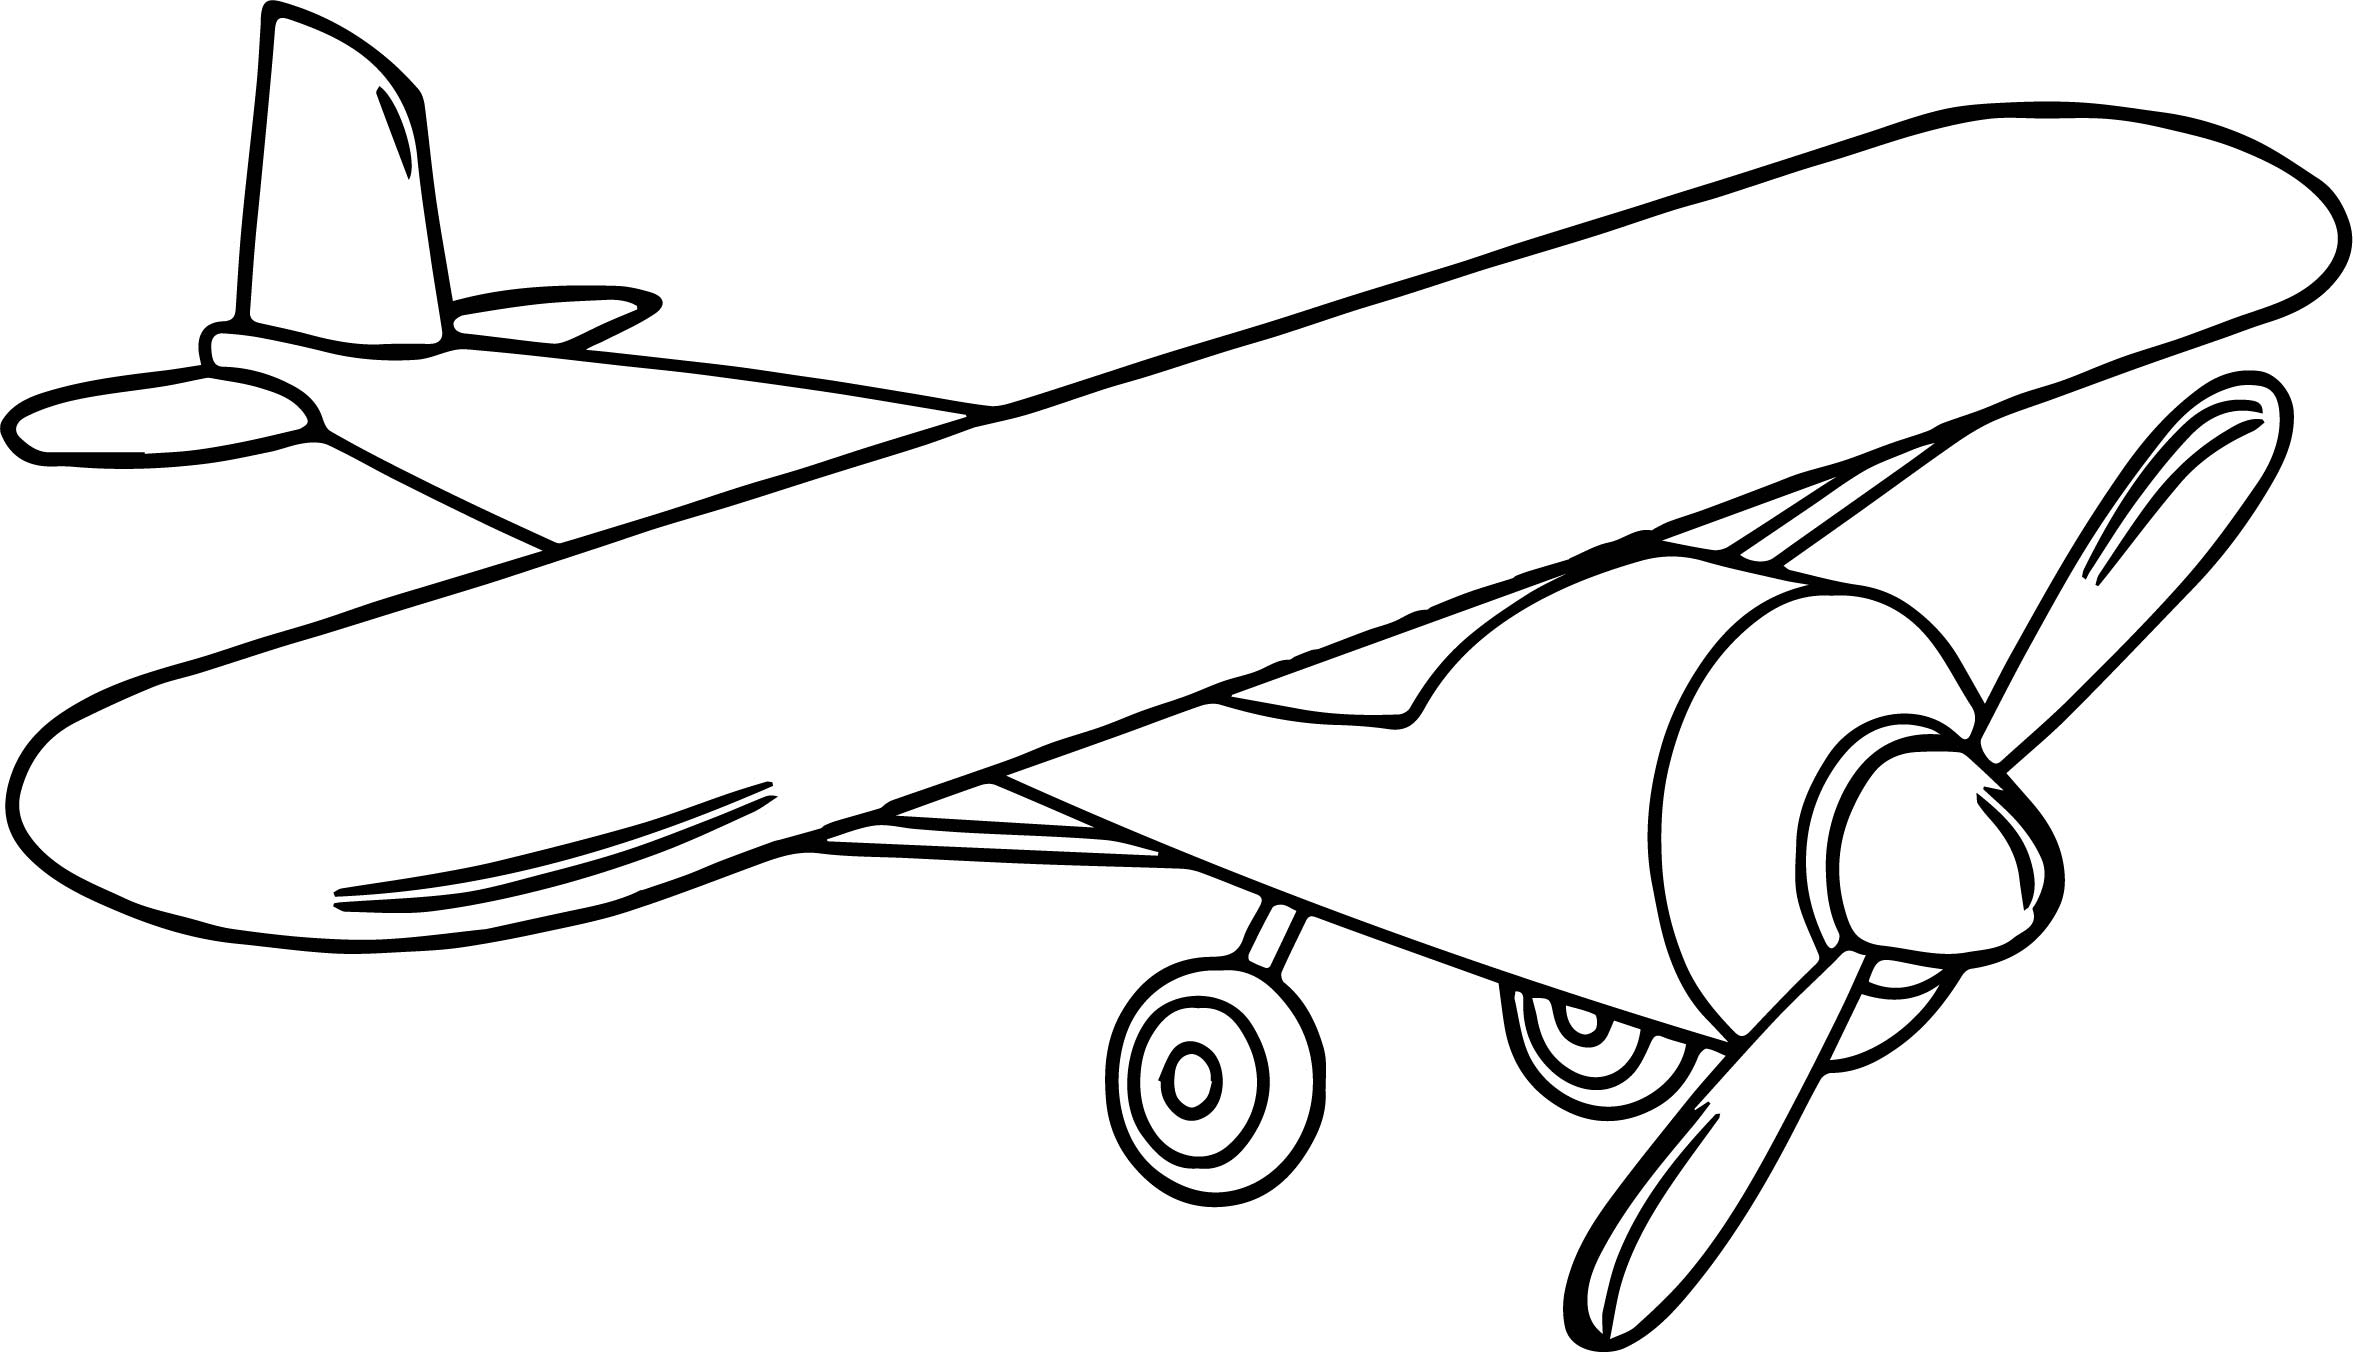 Airplane Toys Coloring Page